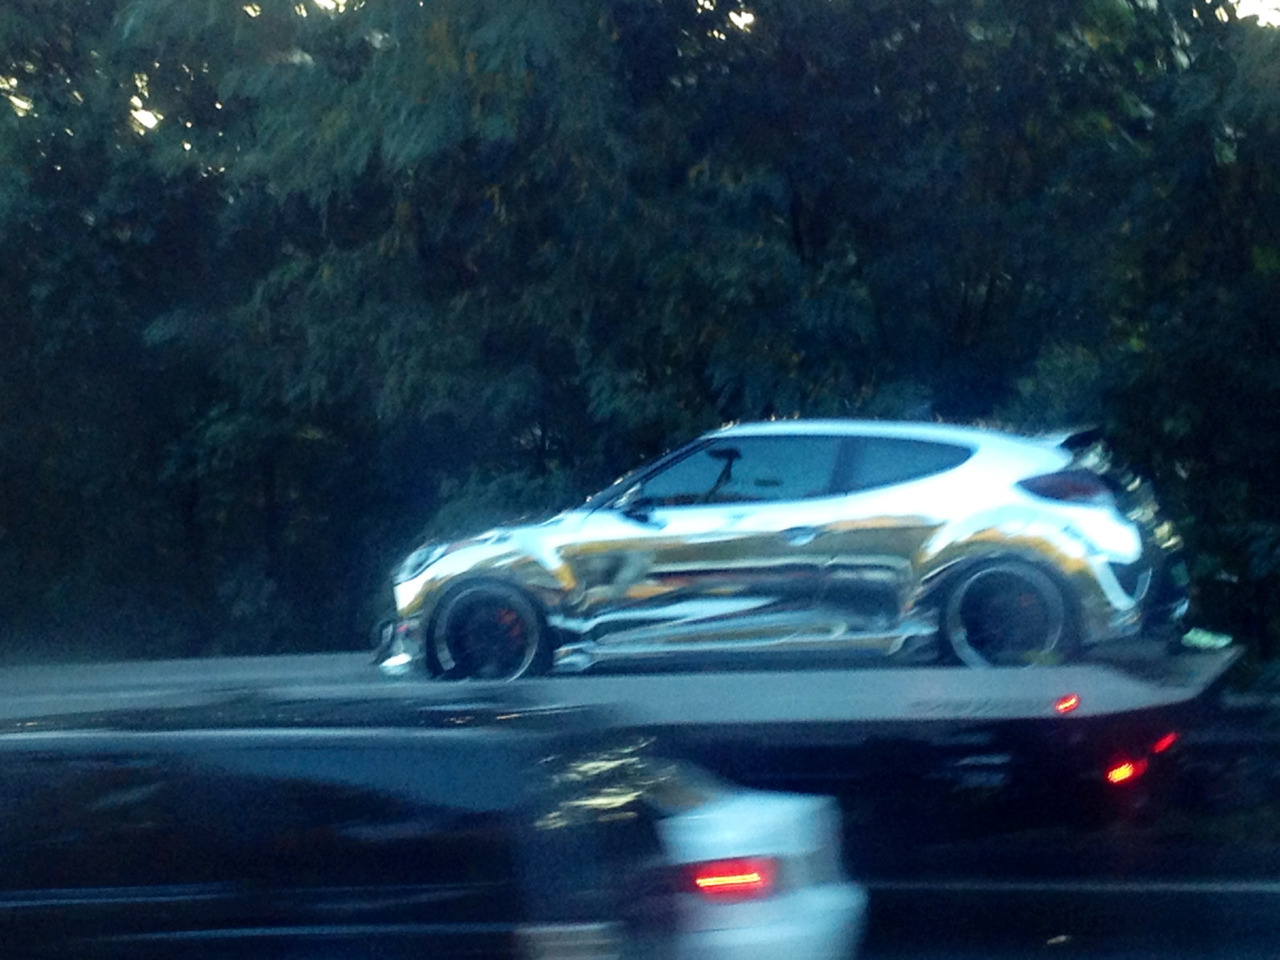 Check out what I just saw on my way home from work, a chromed Veloster on a flatbed truck! A bit hideous but I couldn't resist taking a shotty iphone photo from the bus. Wonder where it's going?